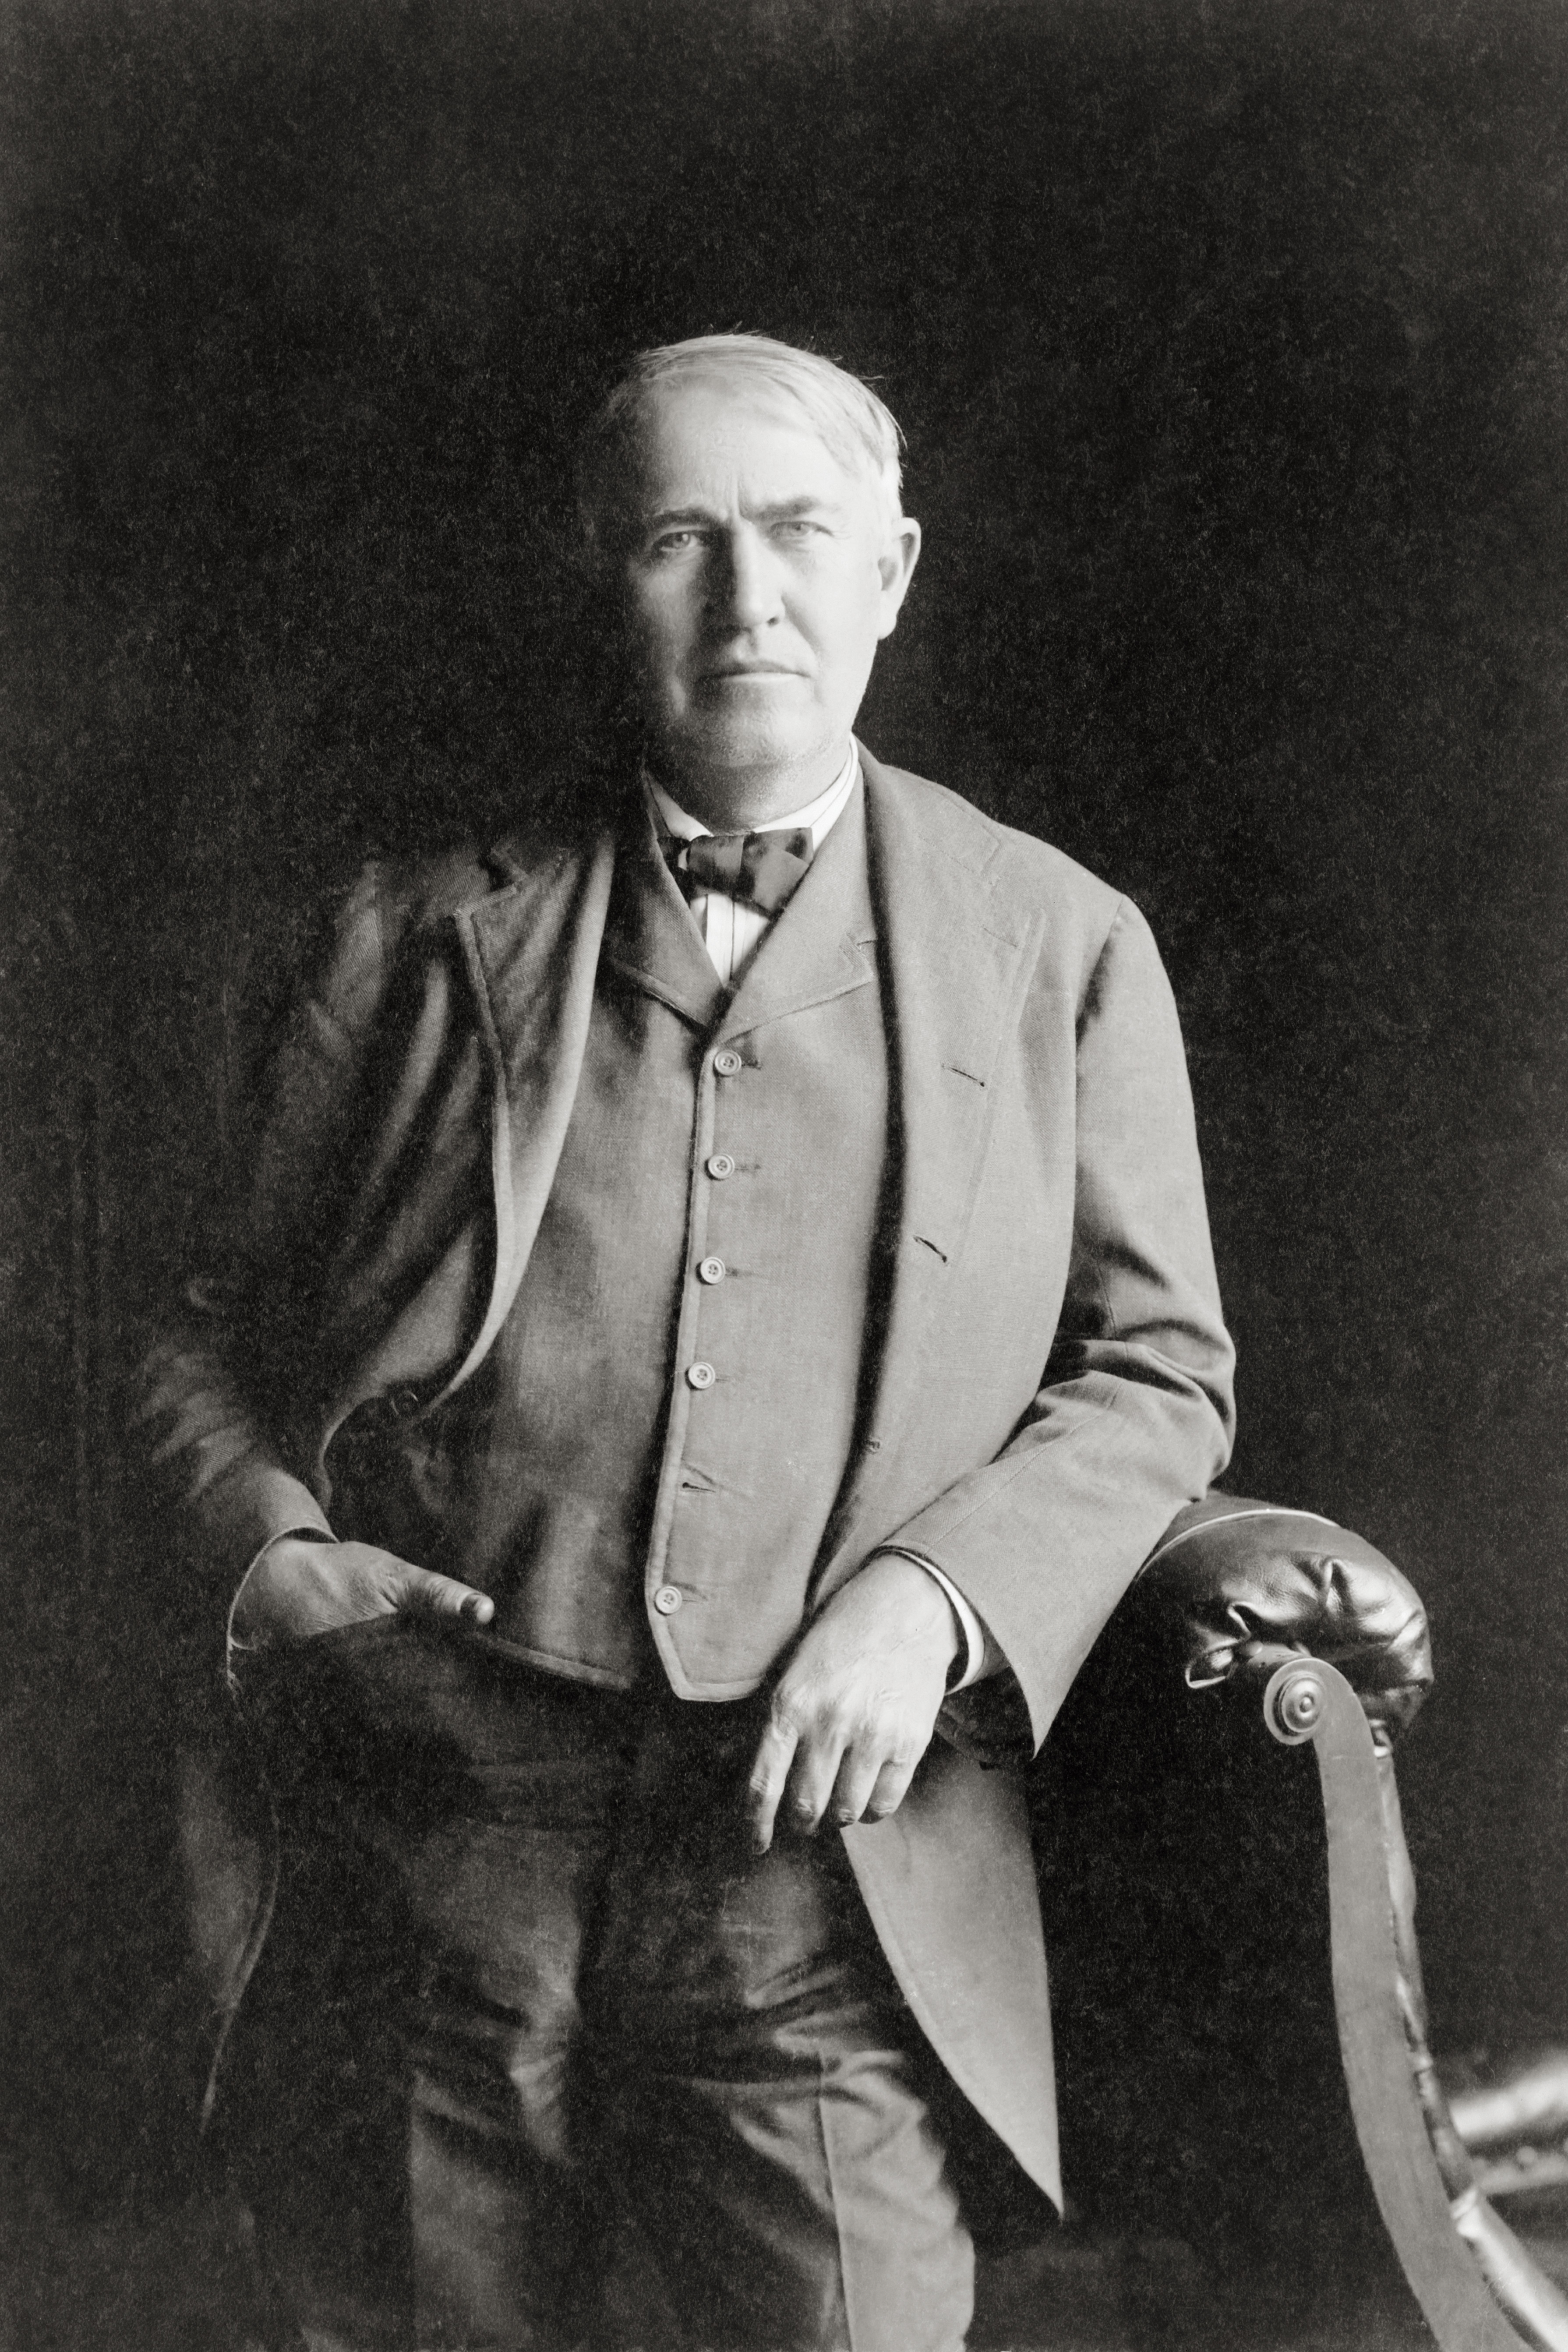 phonograph thomas edison. thomas edison american inventors inventions phonograph the light bulb motion picture